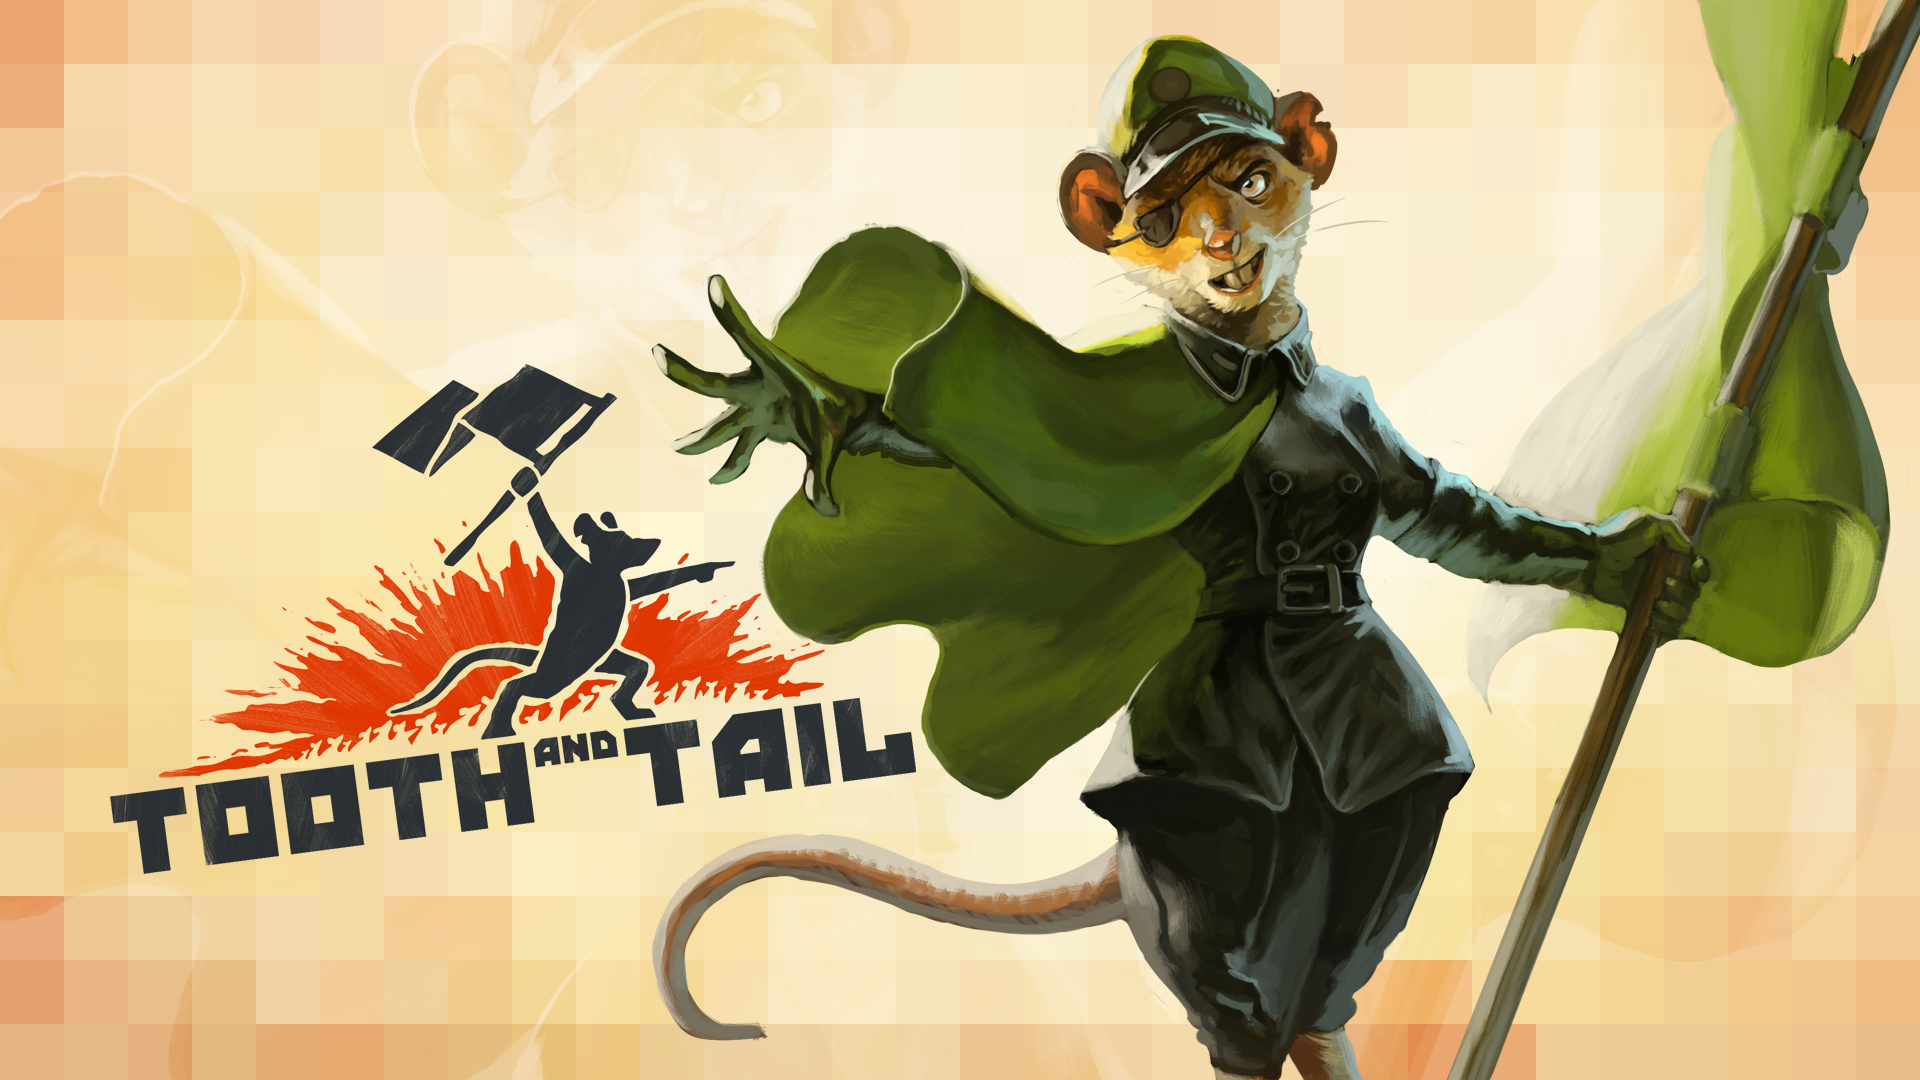 Tooth and Tail promises paratrooper-puking owls and flamethrowing boars